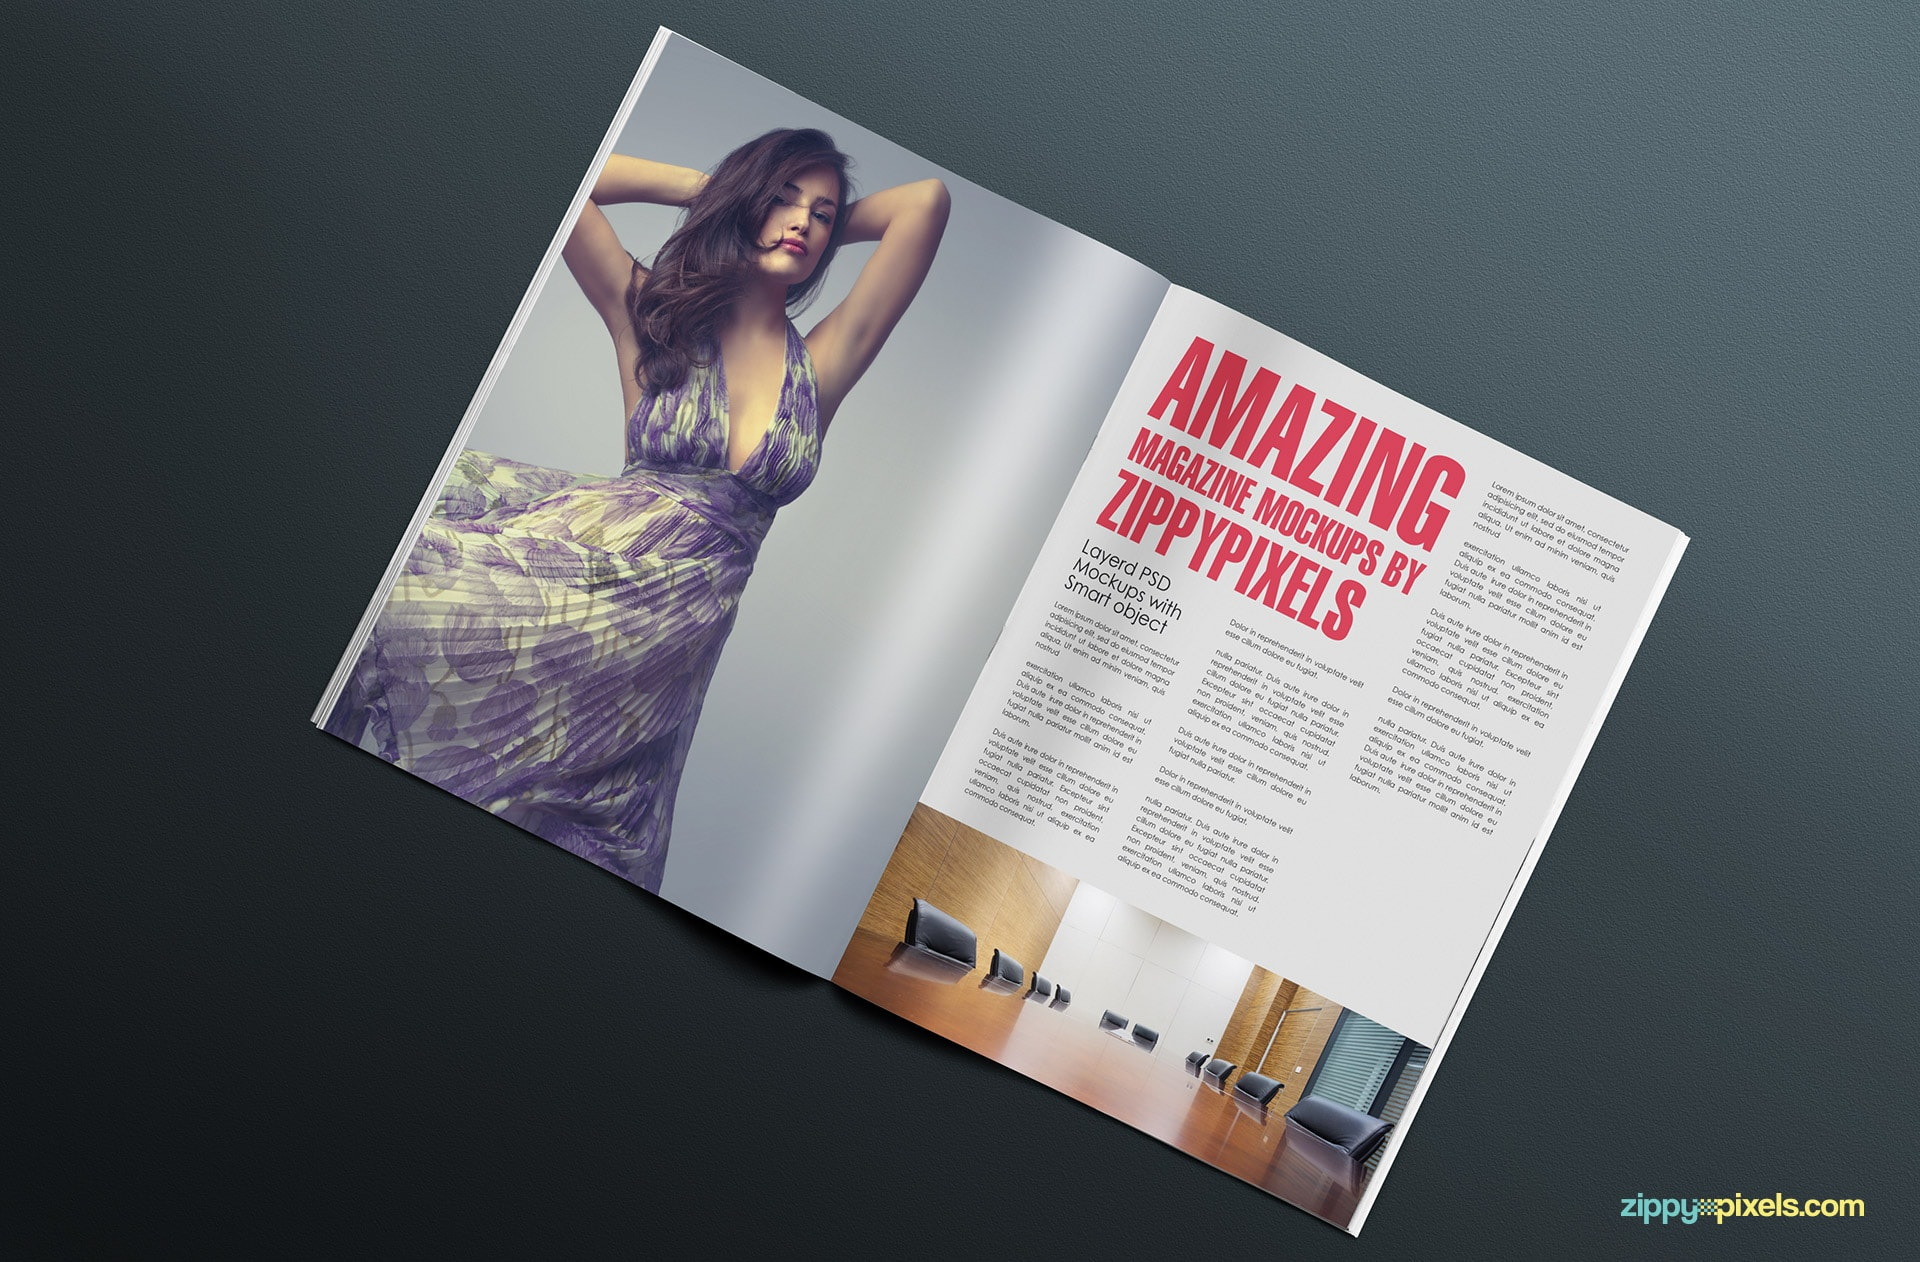 showcase your spread editorial designs realistically